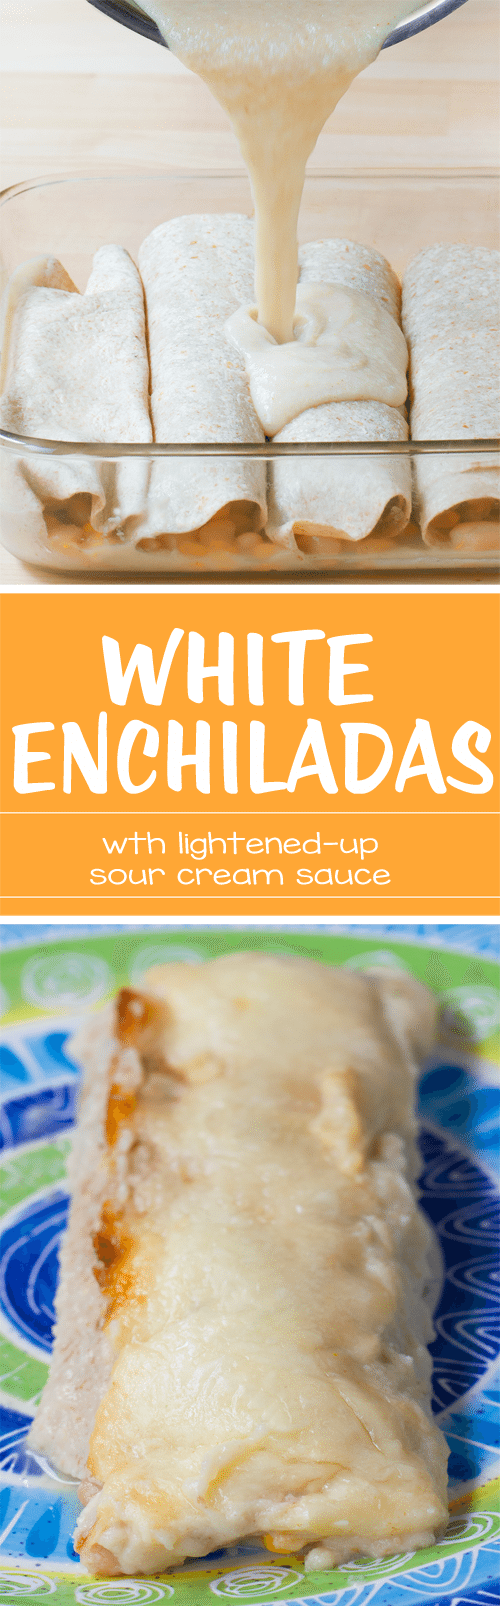 These deliciously lightened-up & vegan enchiladas are the ultimate healthy comfort food! Full recipe: https://chocolatecoveredkatie.com/2016/11/01/vegetarian-enchiladas-white-healthy/ @choccoveredkt